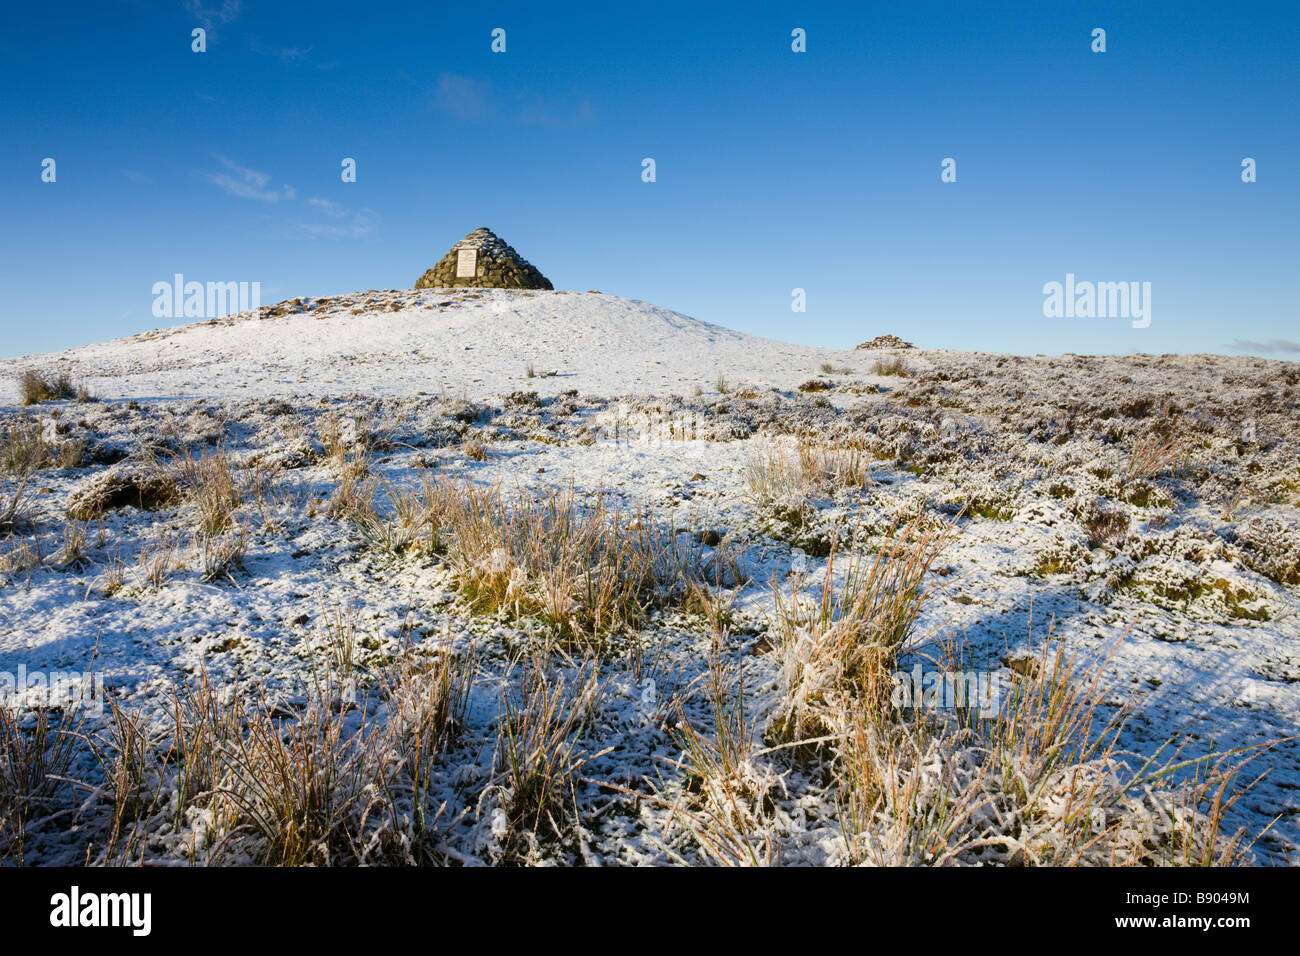 Stone Cairn at Dunkery Beacon on a snowy winter morning Exmoor National Park Somerset England - Stock Image